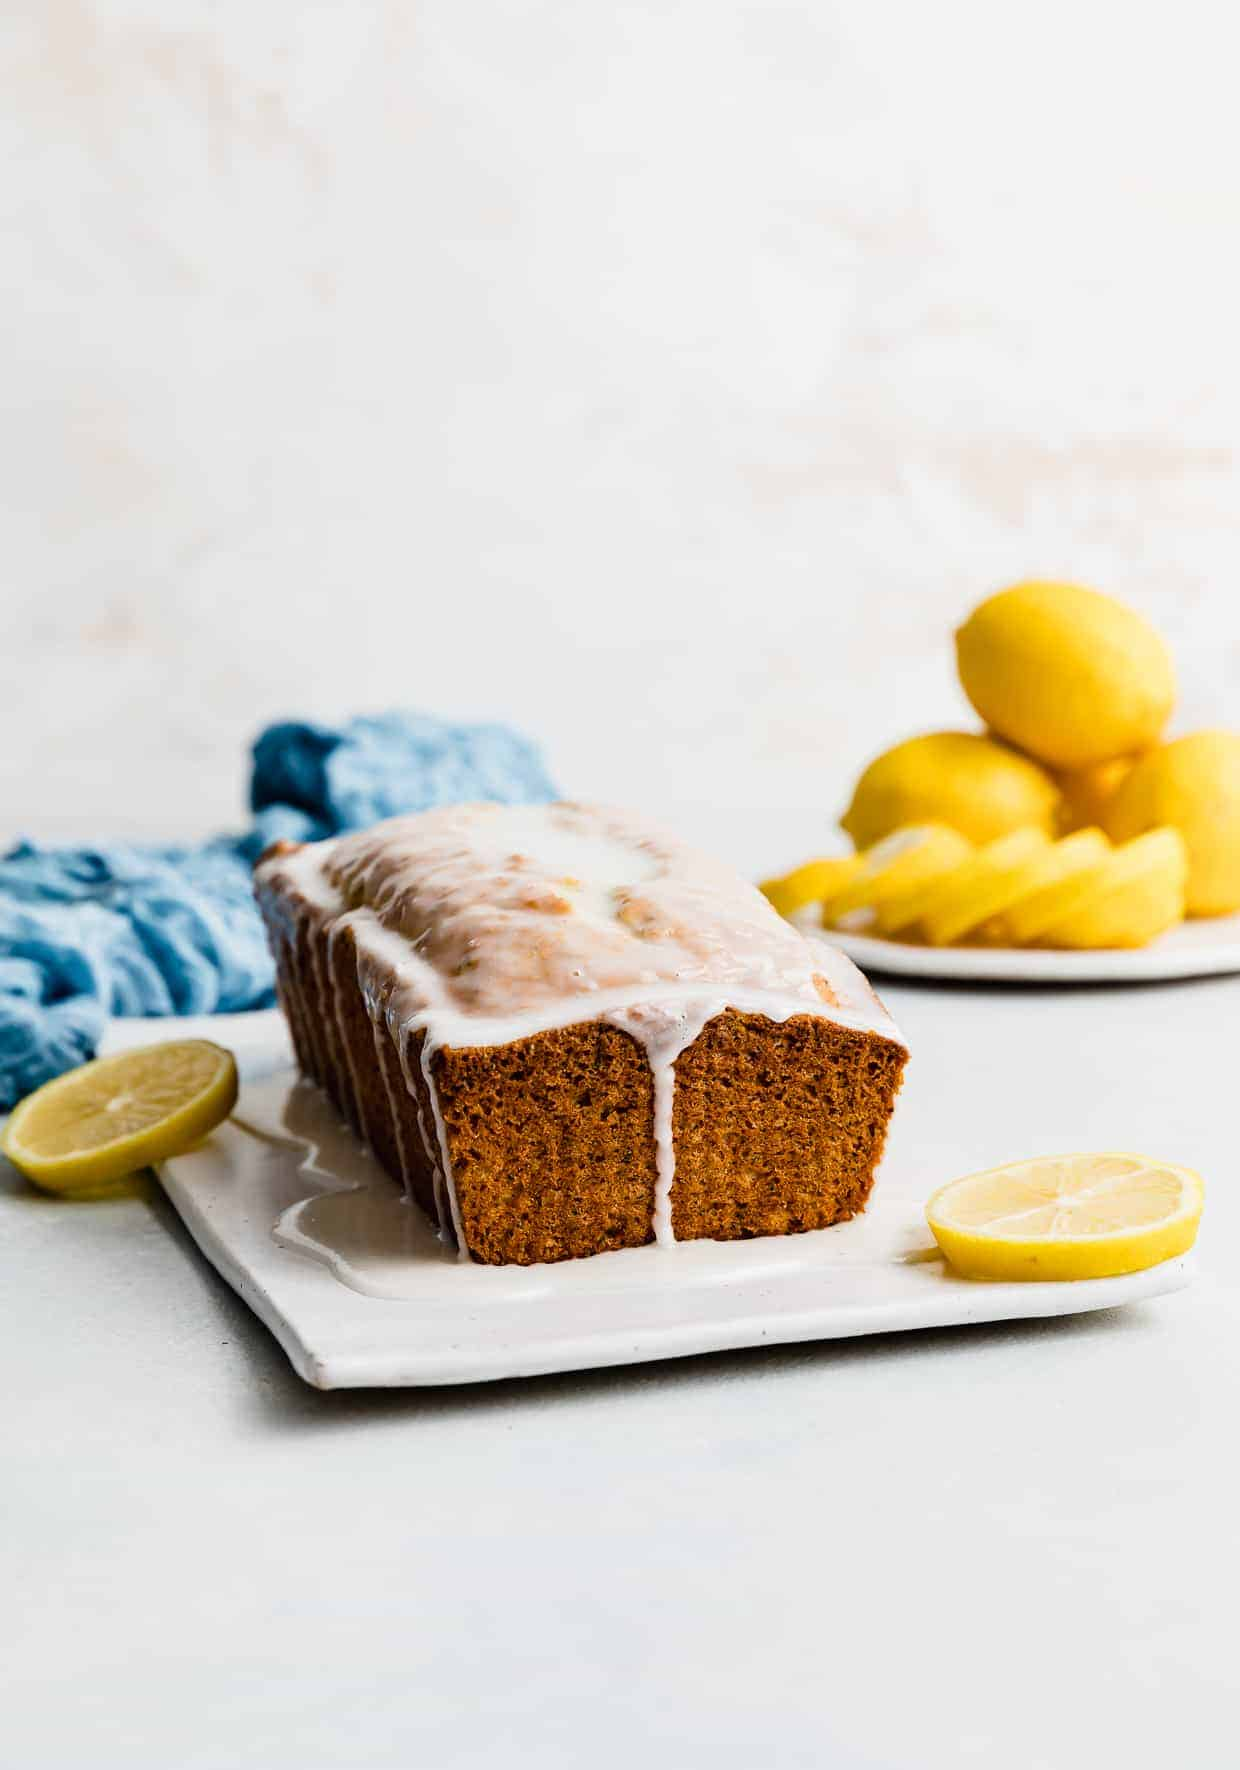 A loaf of Lemon Poppy Seed Bread drizzled with a white glaze against a white background, with yellow lemons stacked on a plate near the loaf.